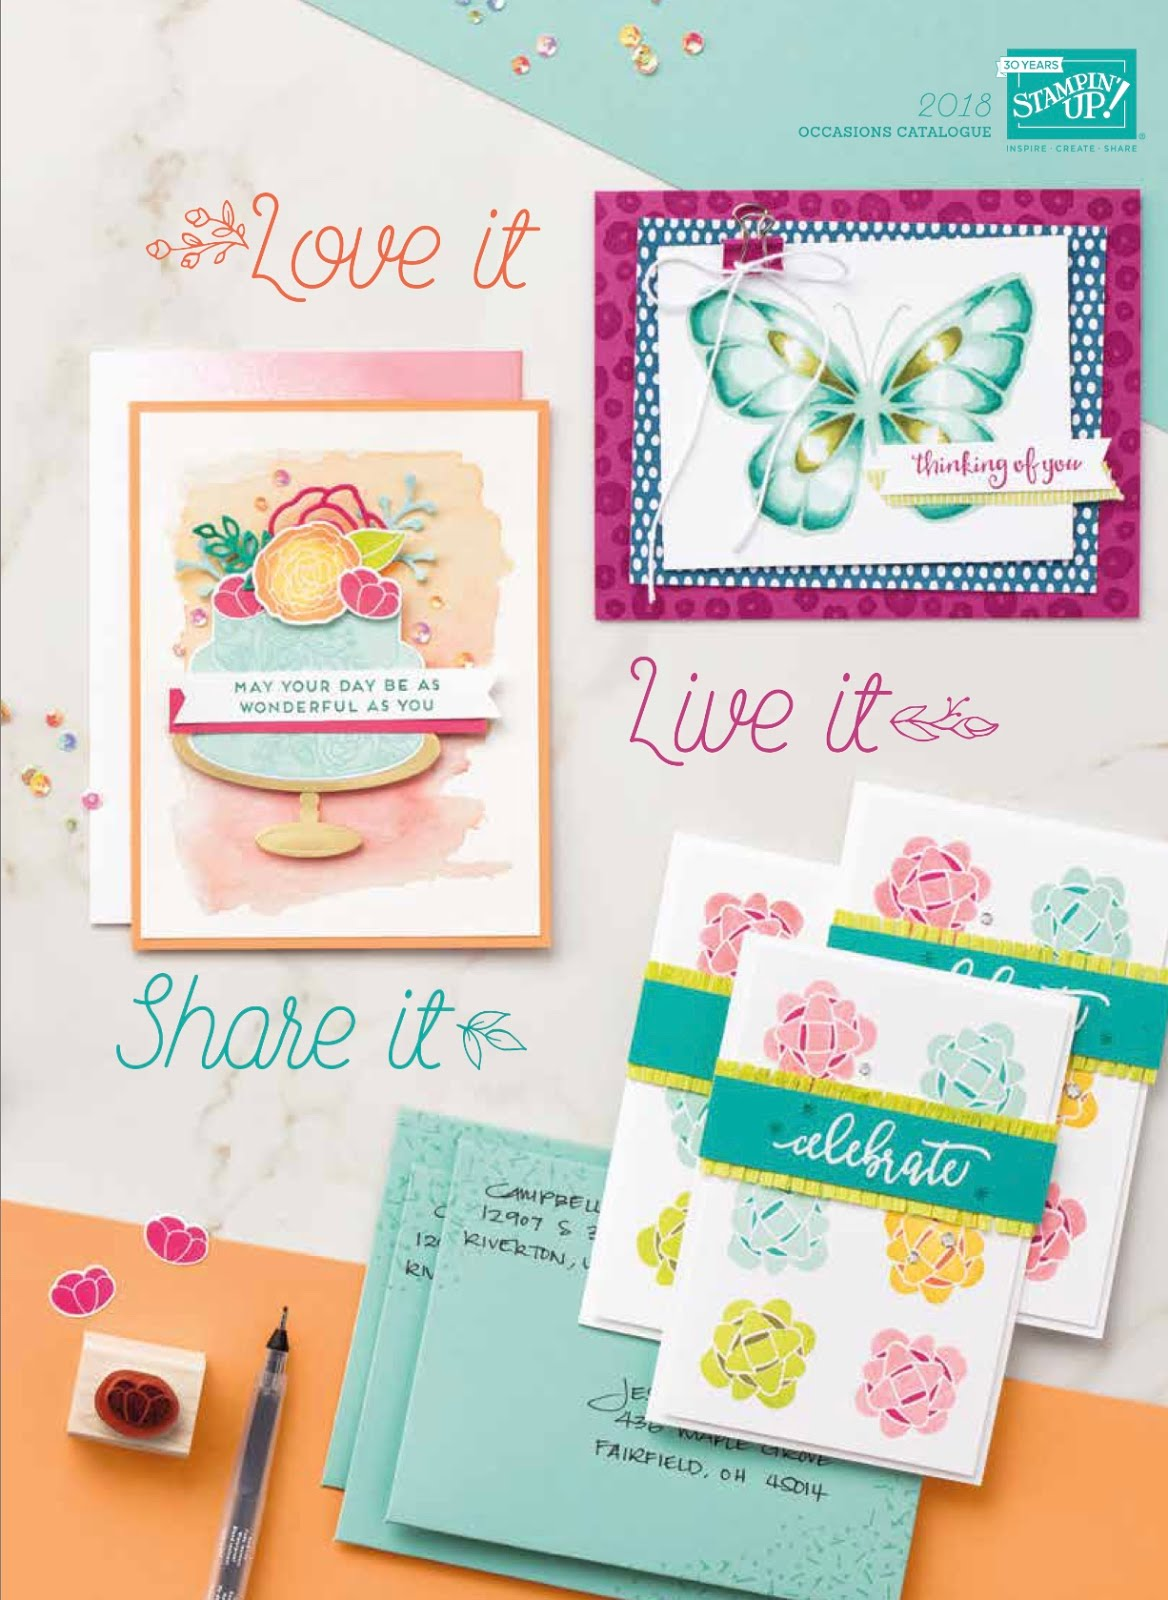 Stampin' Up! 2018 Occasions Catalogue